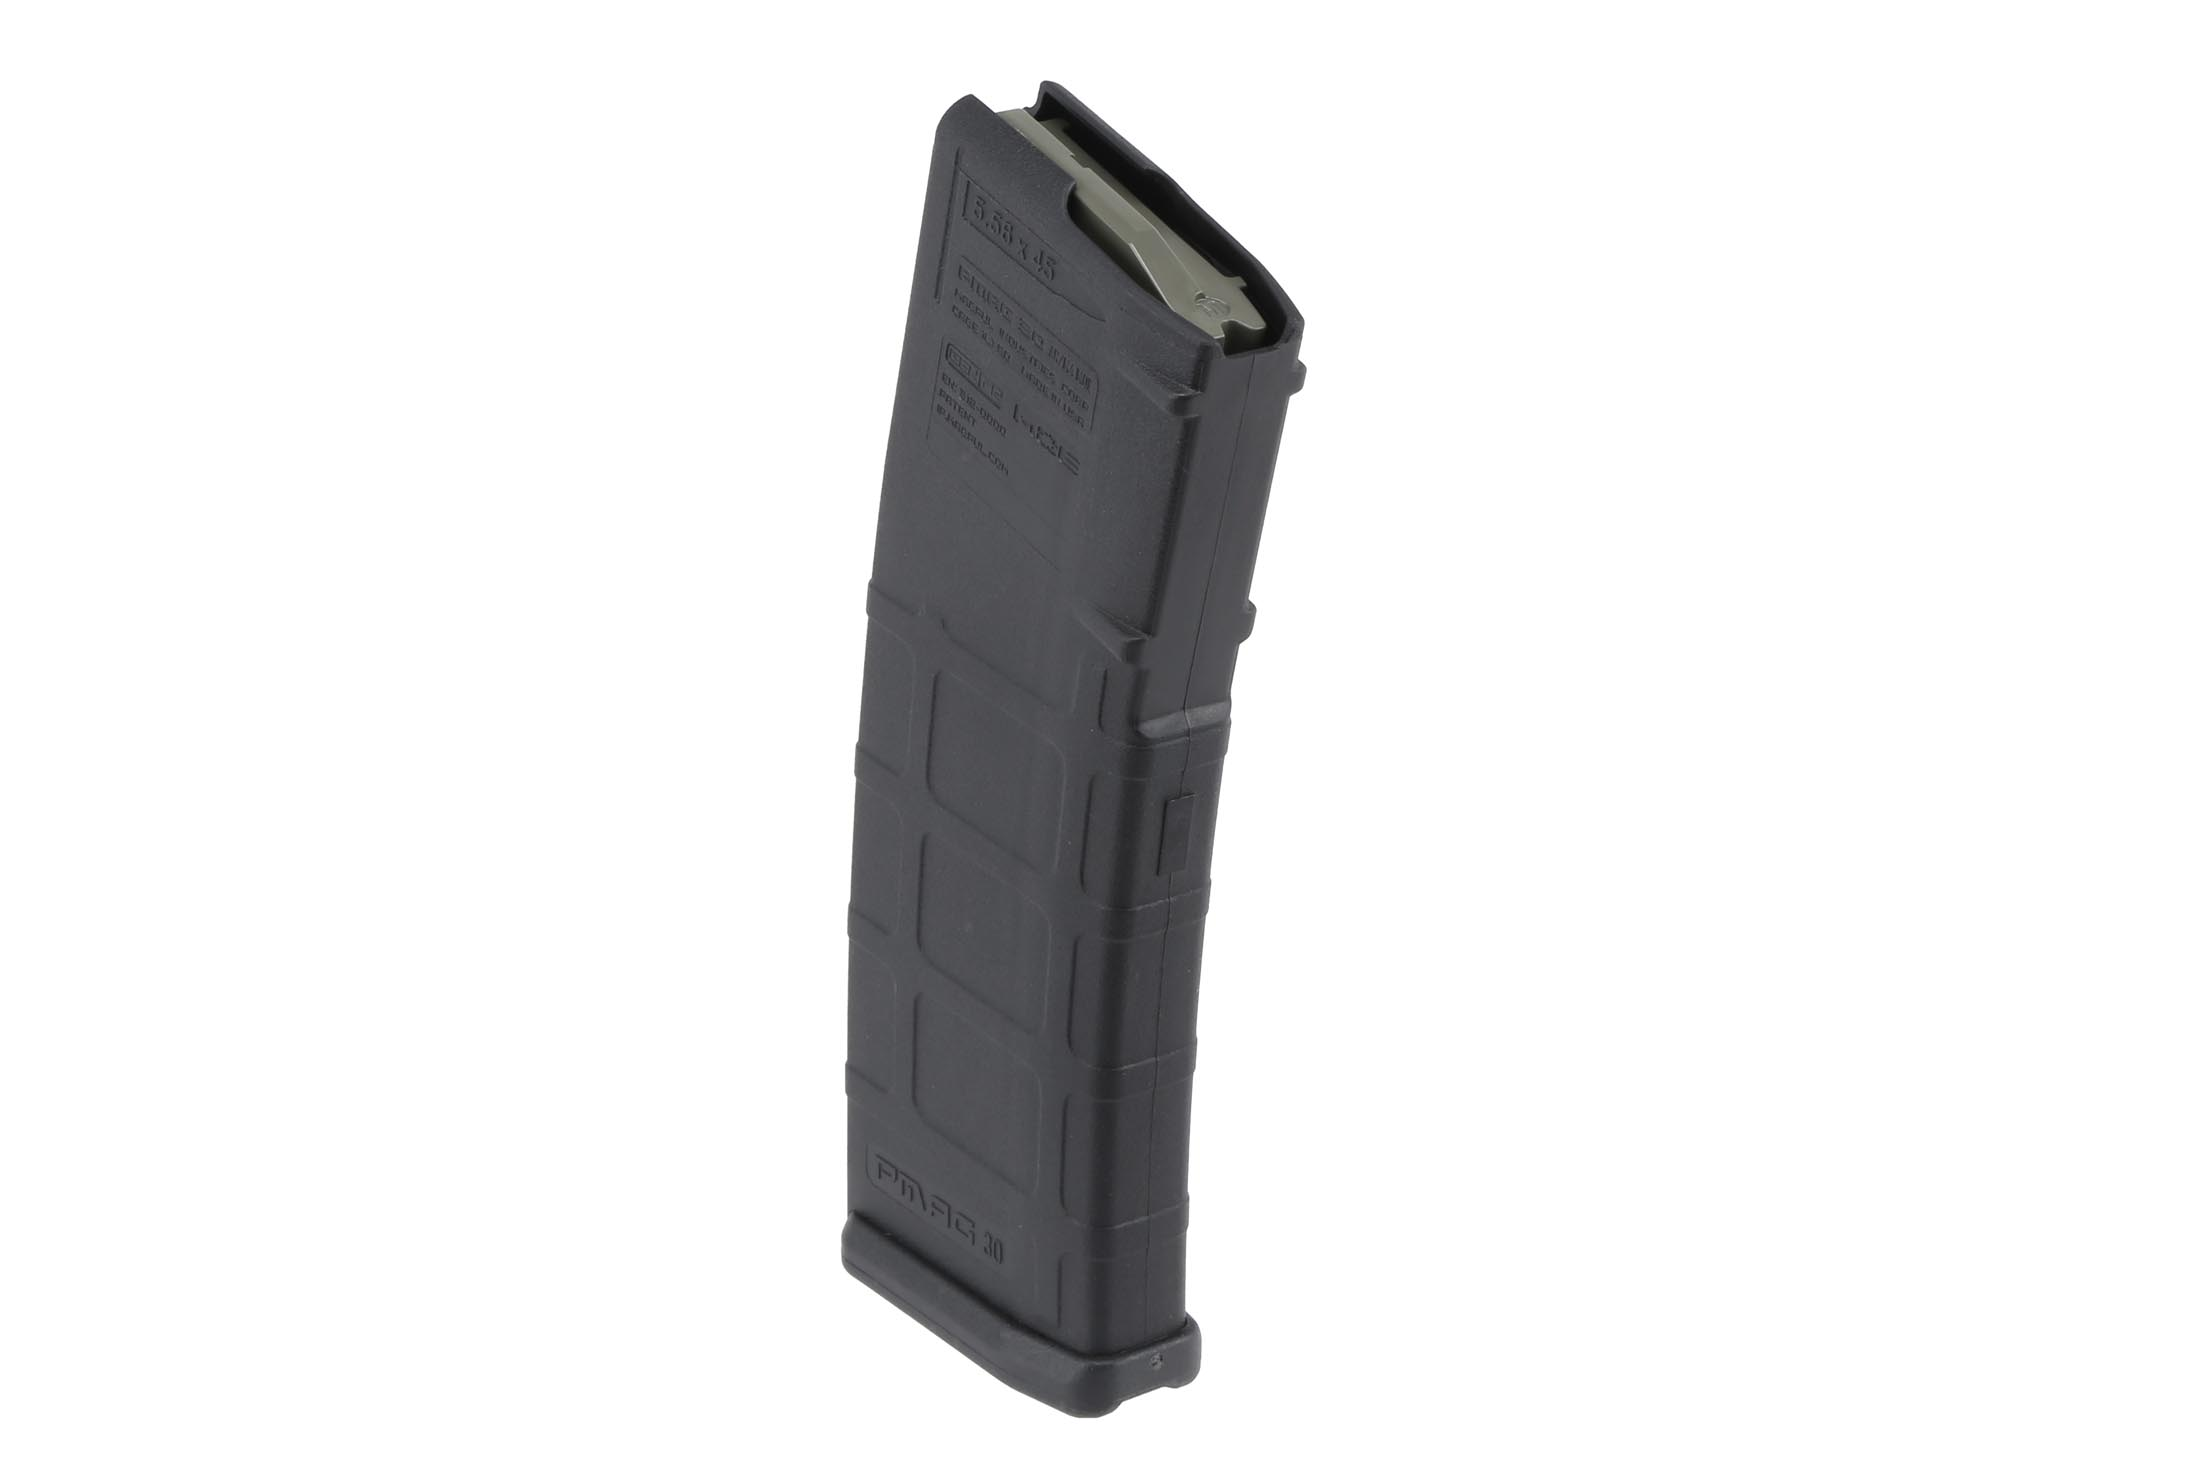 The PMAGs AR15 magazine features an anti-tilt follower with self lubricating properties for reliable function